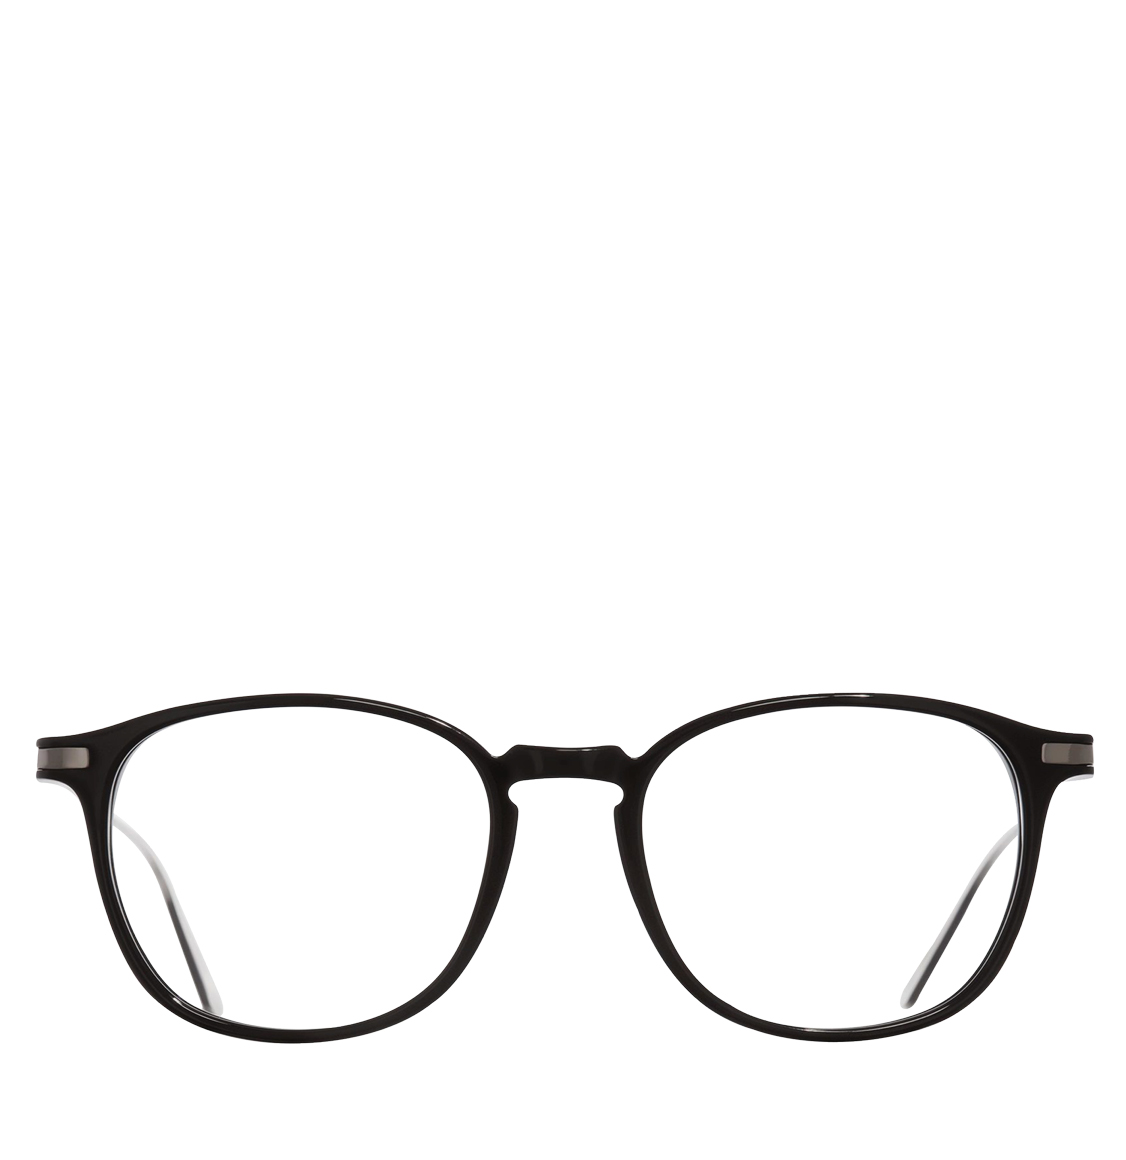 Cutler and Gross Round-Frame Black Acetate Optical Glasses